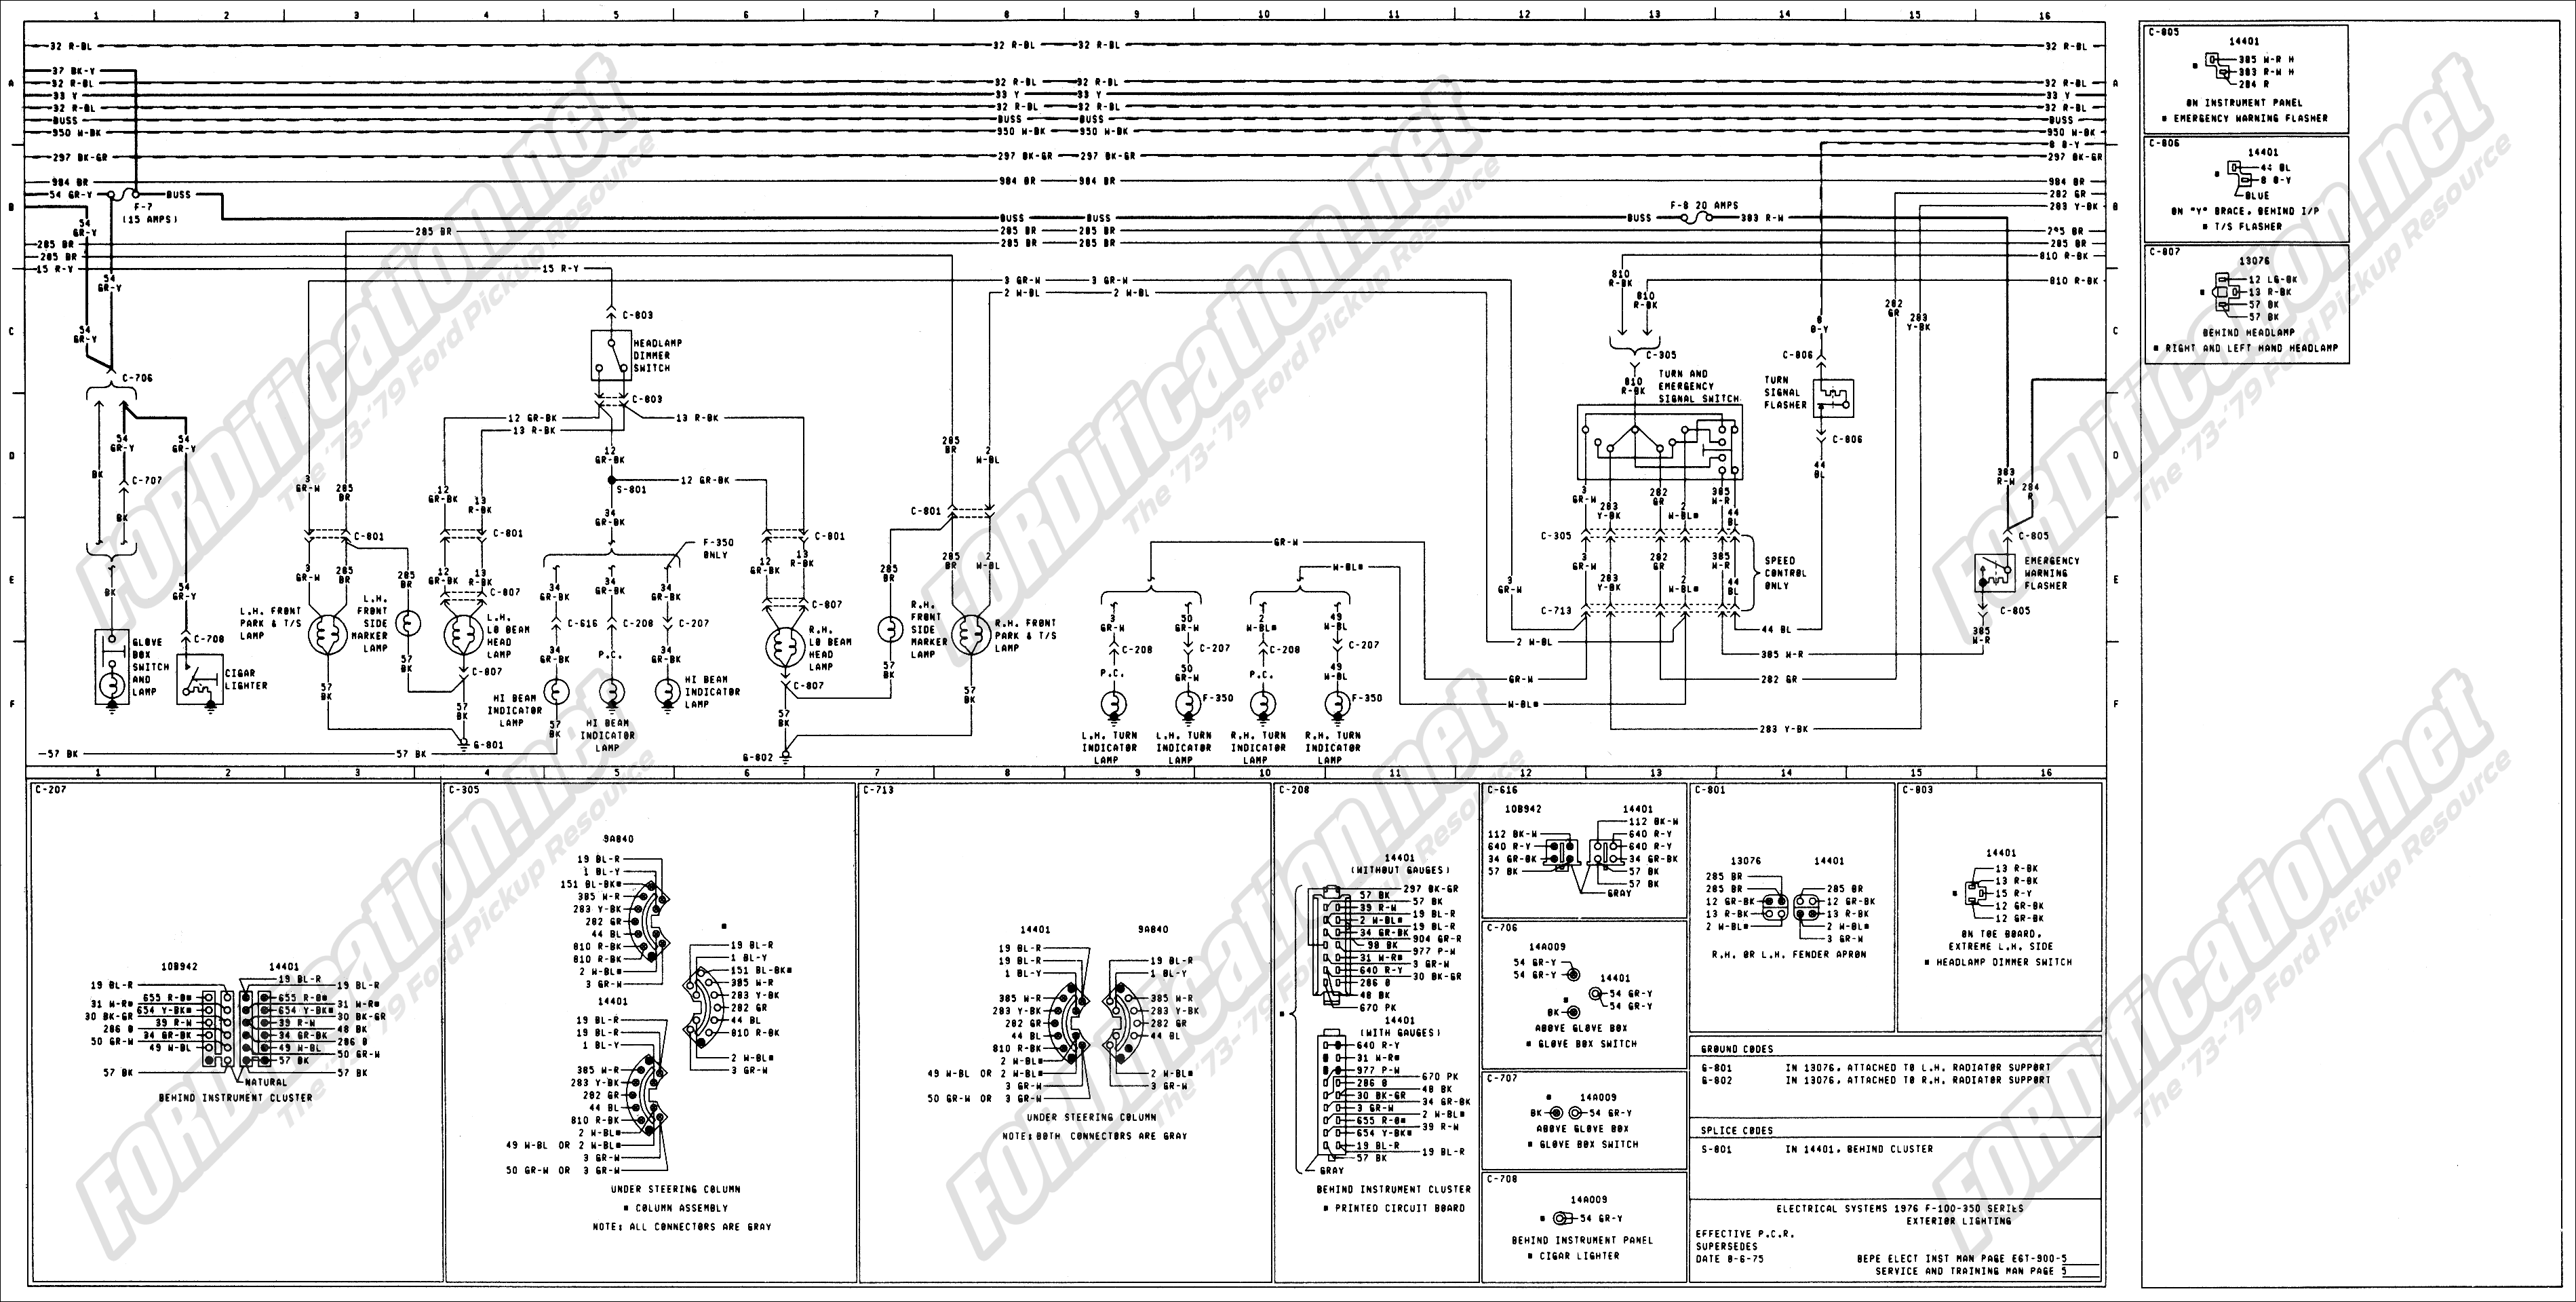 1989 F150 Alternator Wiring Harness 78 Ford Diagram Schematics 1973 1979 Truck Diagrams Fordification Net